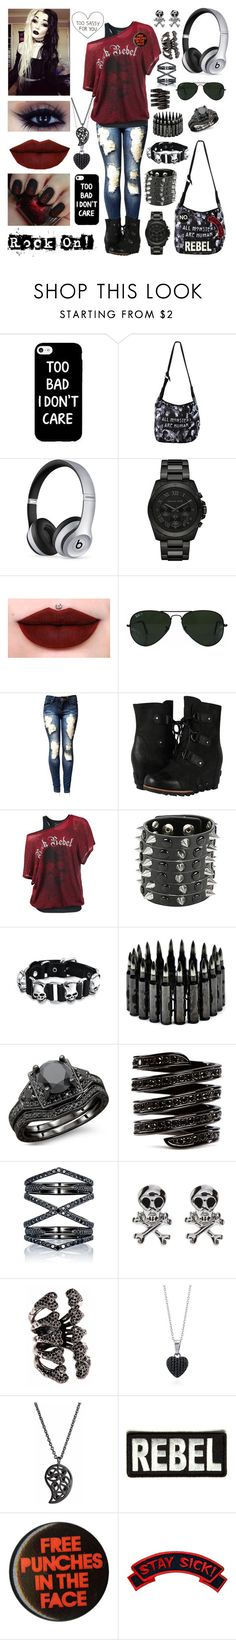 """""""An outfit that makes me feel good tag (RTD)"""" by jeanie-boyd ❤ liked on Polyvore featuring Beats by Dr. Dre, Michael Kors, Jeffree Star, Ray-Ban, SOREL, Bling Jewelry, Lynn Ban, Eva Fehren, BERRICLE and Sonal Bhaskaran"""